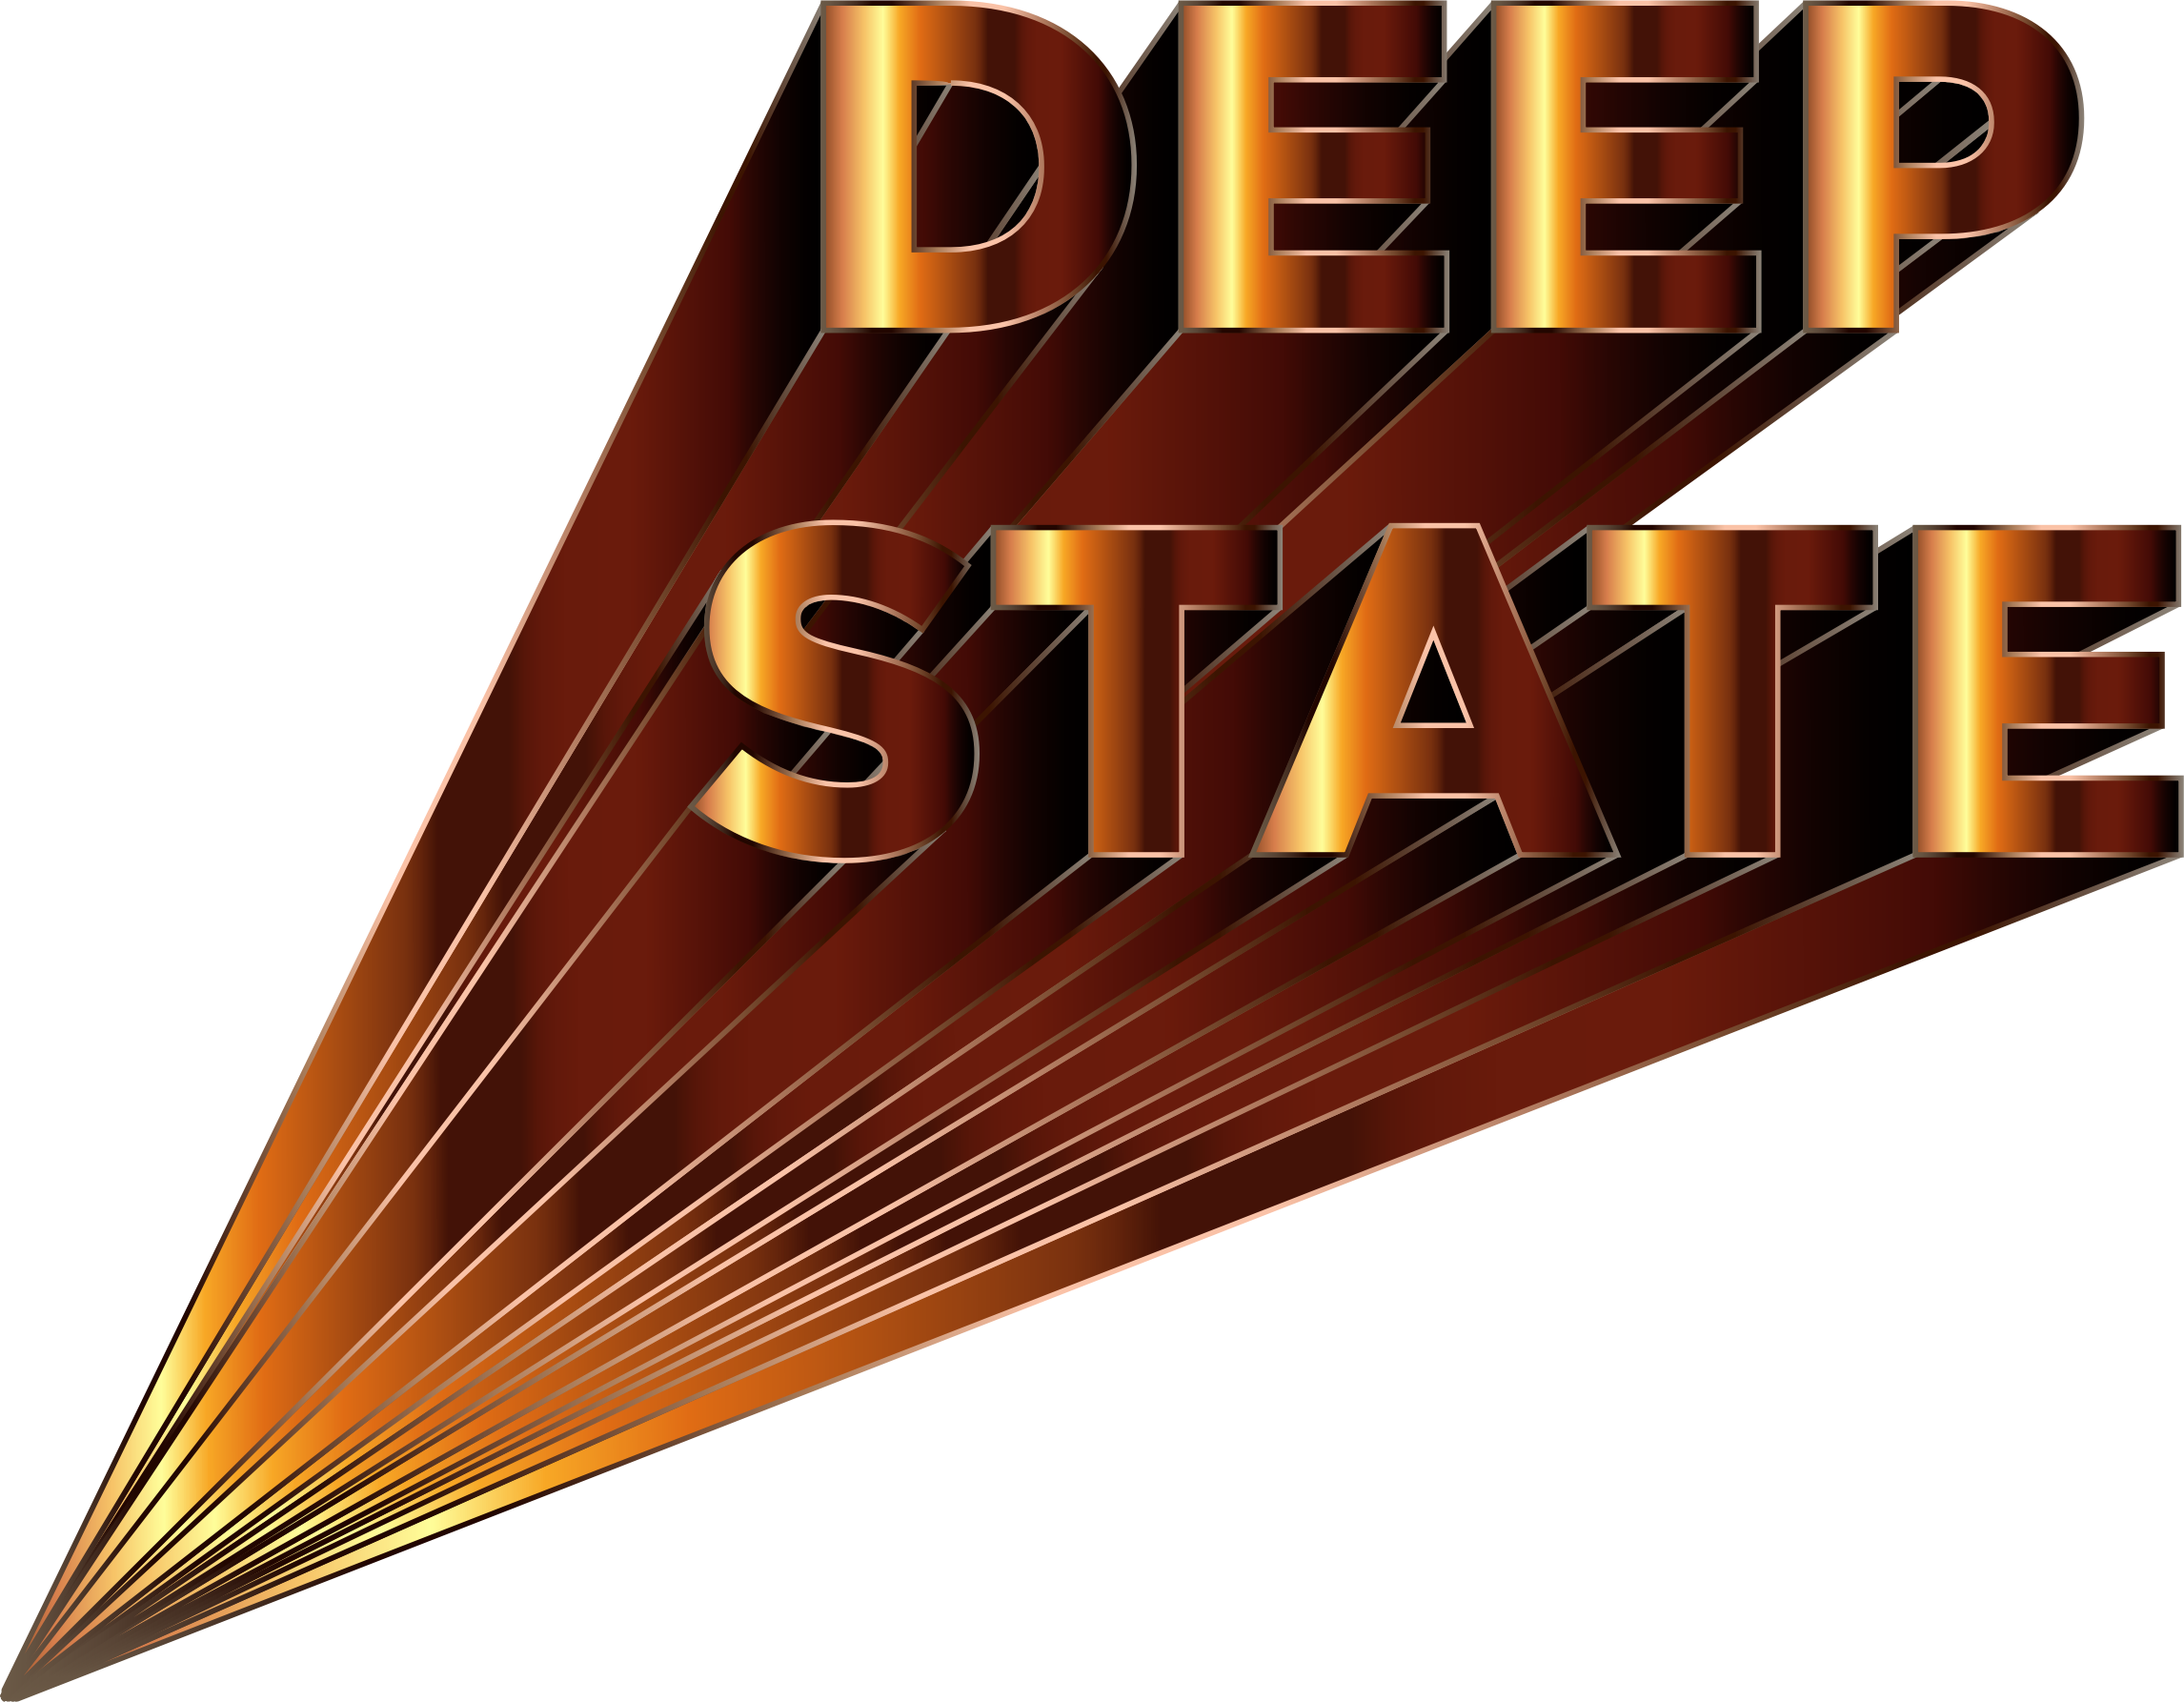 Deep State Typography 4 by GDJ